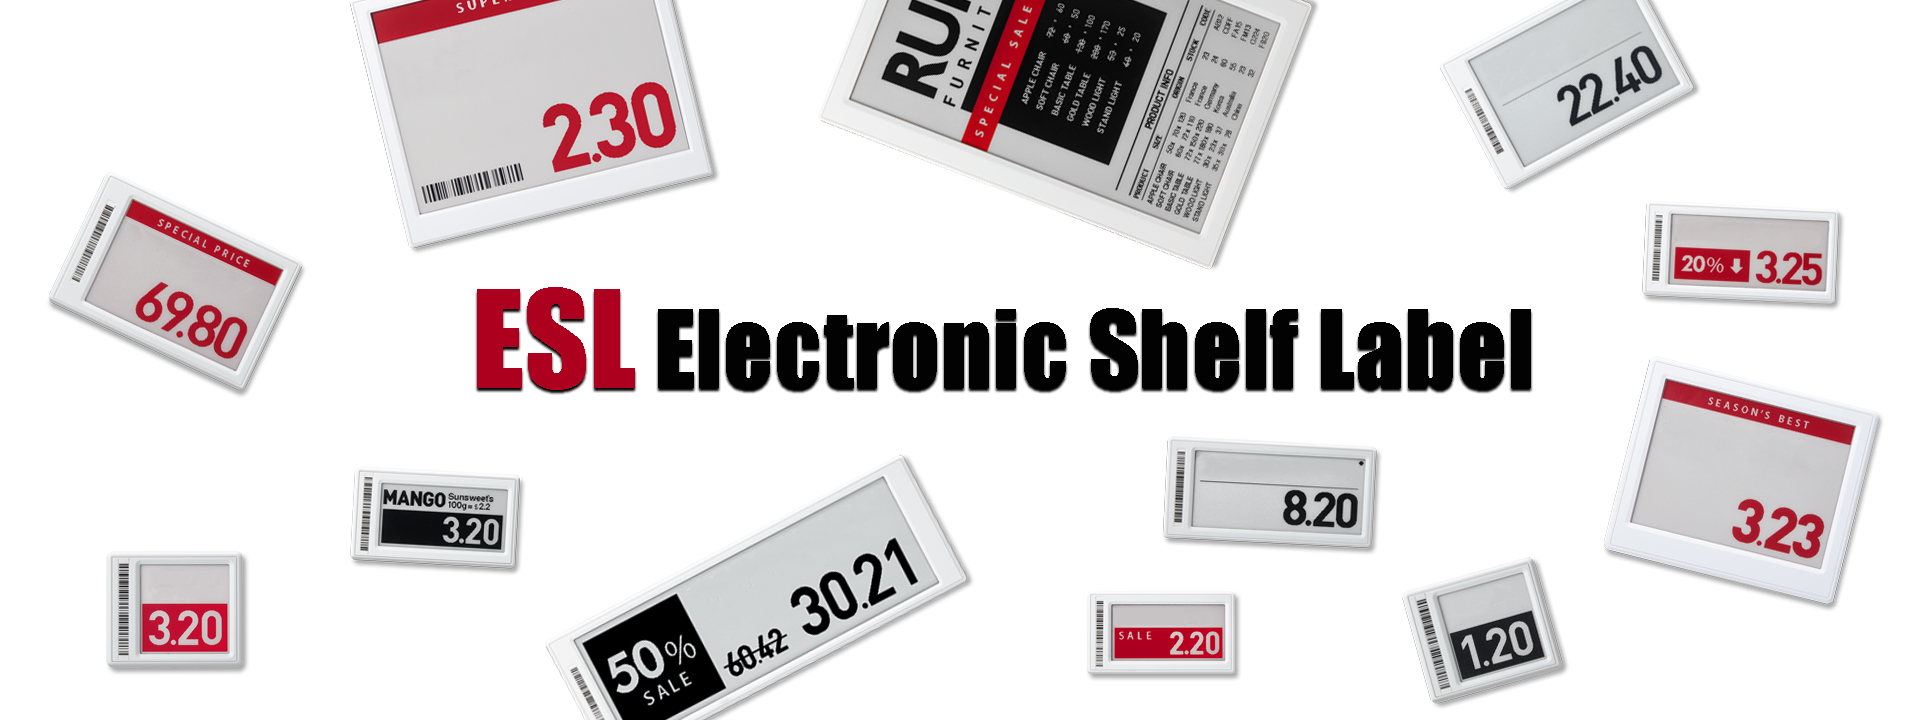 Wireless Transmission  Electronic Shelf Label ESL For Pharmacy, Logistic Solutions